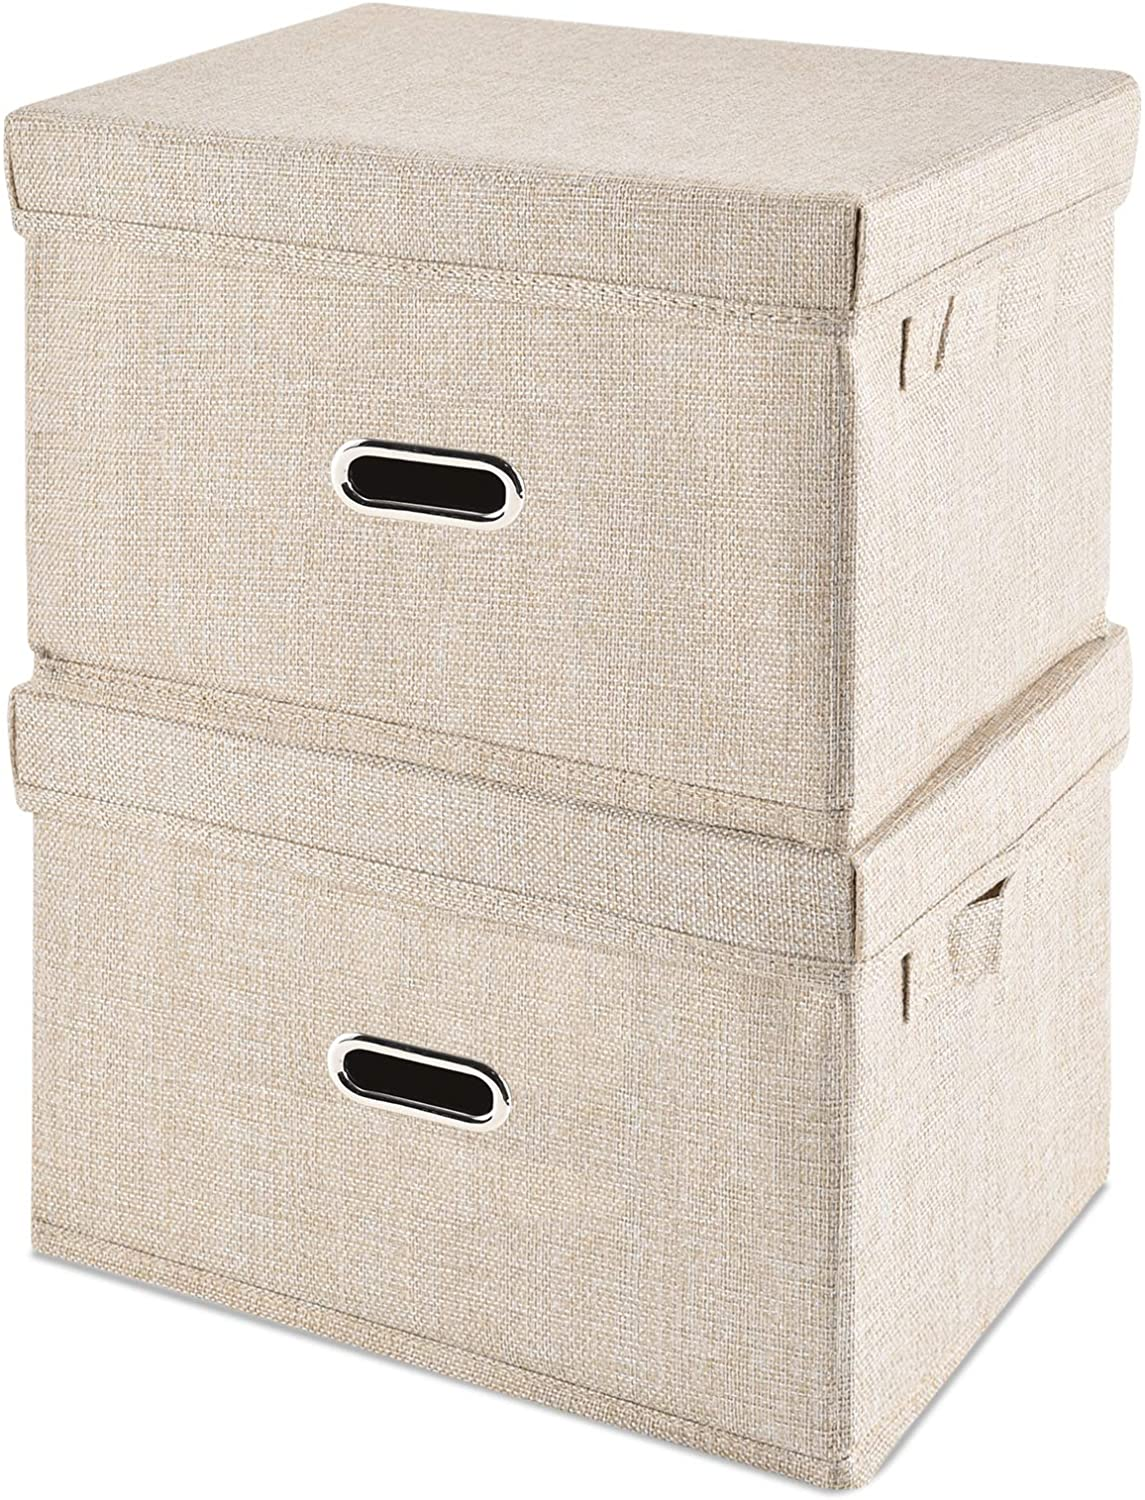 HONGKERNE San Francisco Mall Linen Fabric Storage Bin Ranking TOP14 Lid Sto Foldable 2-Pack with